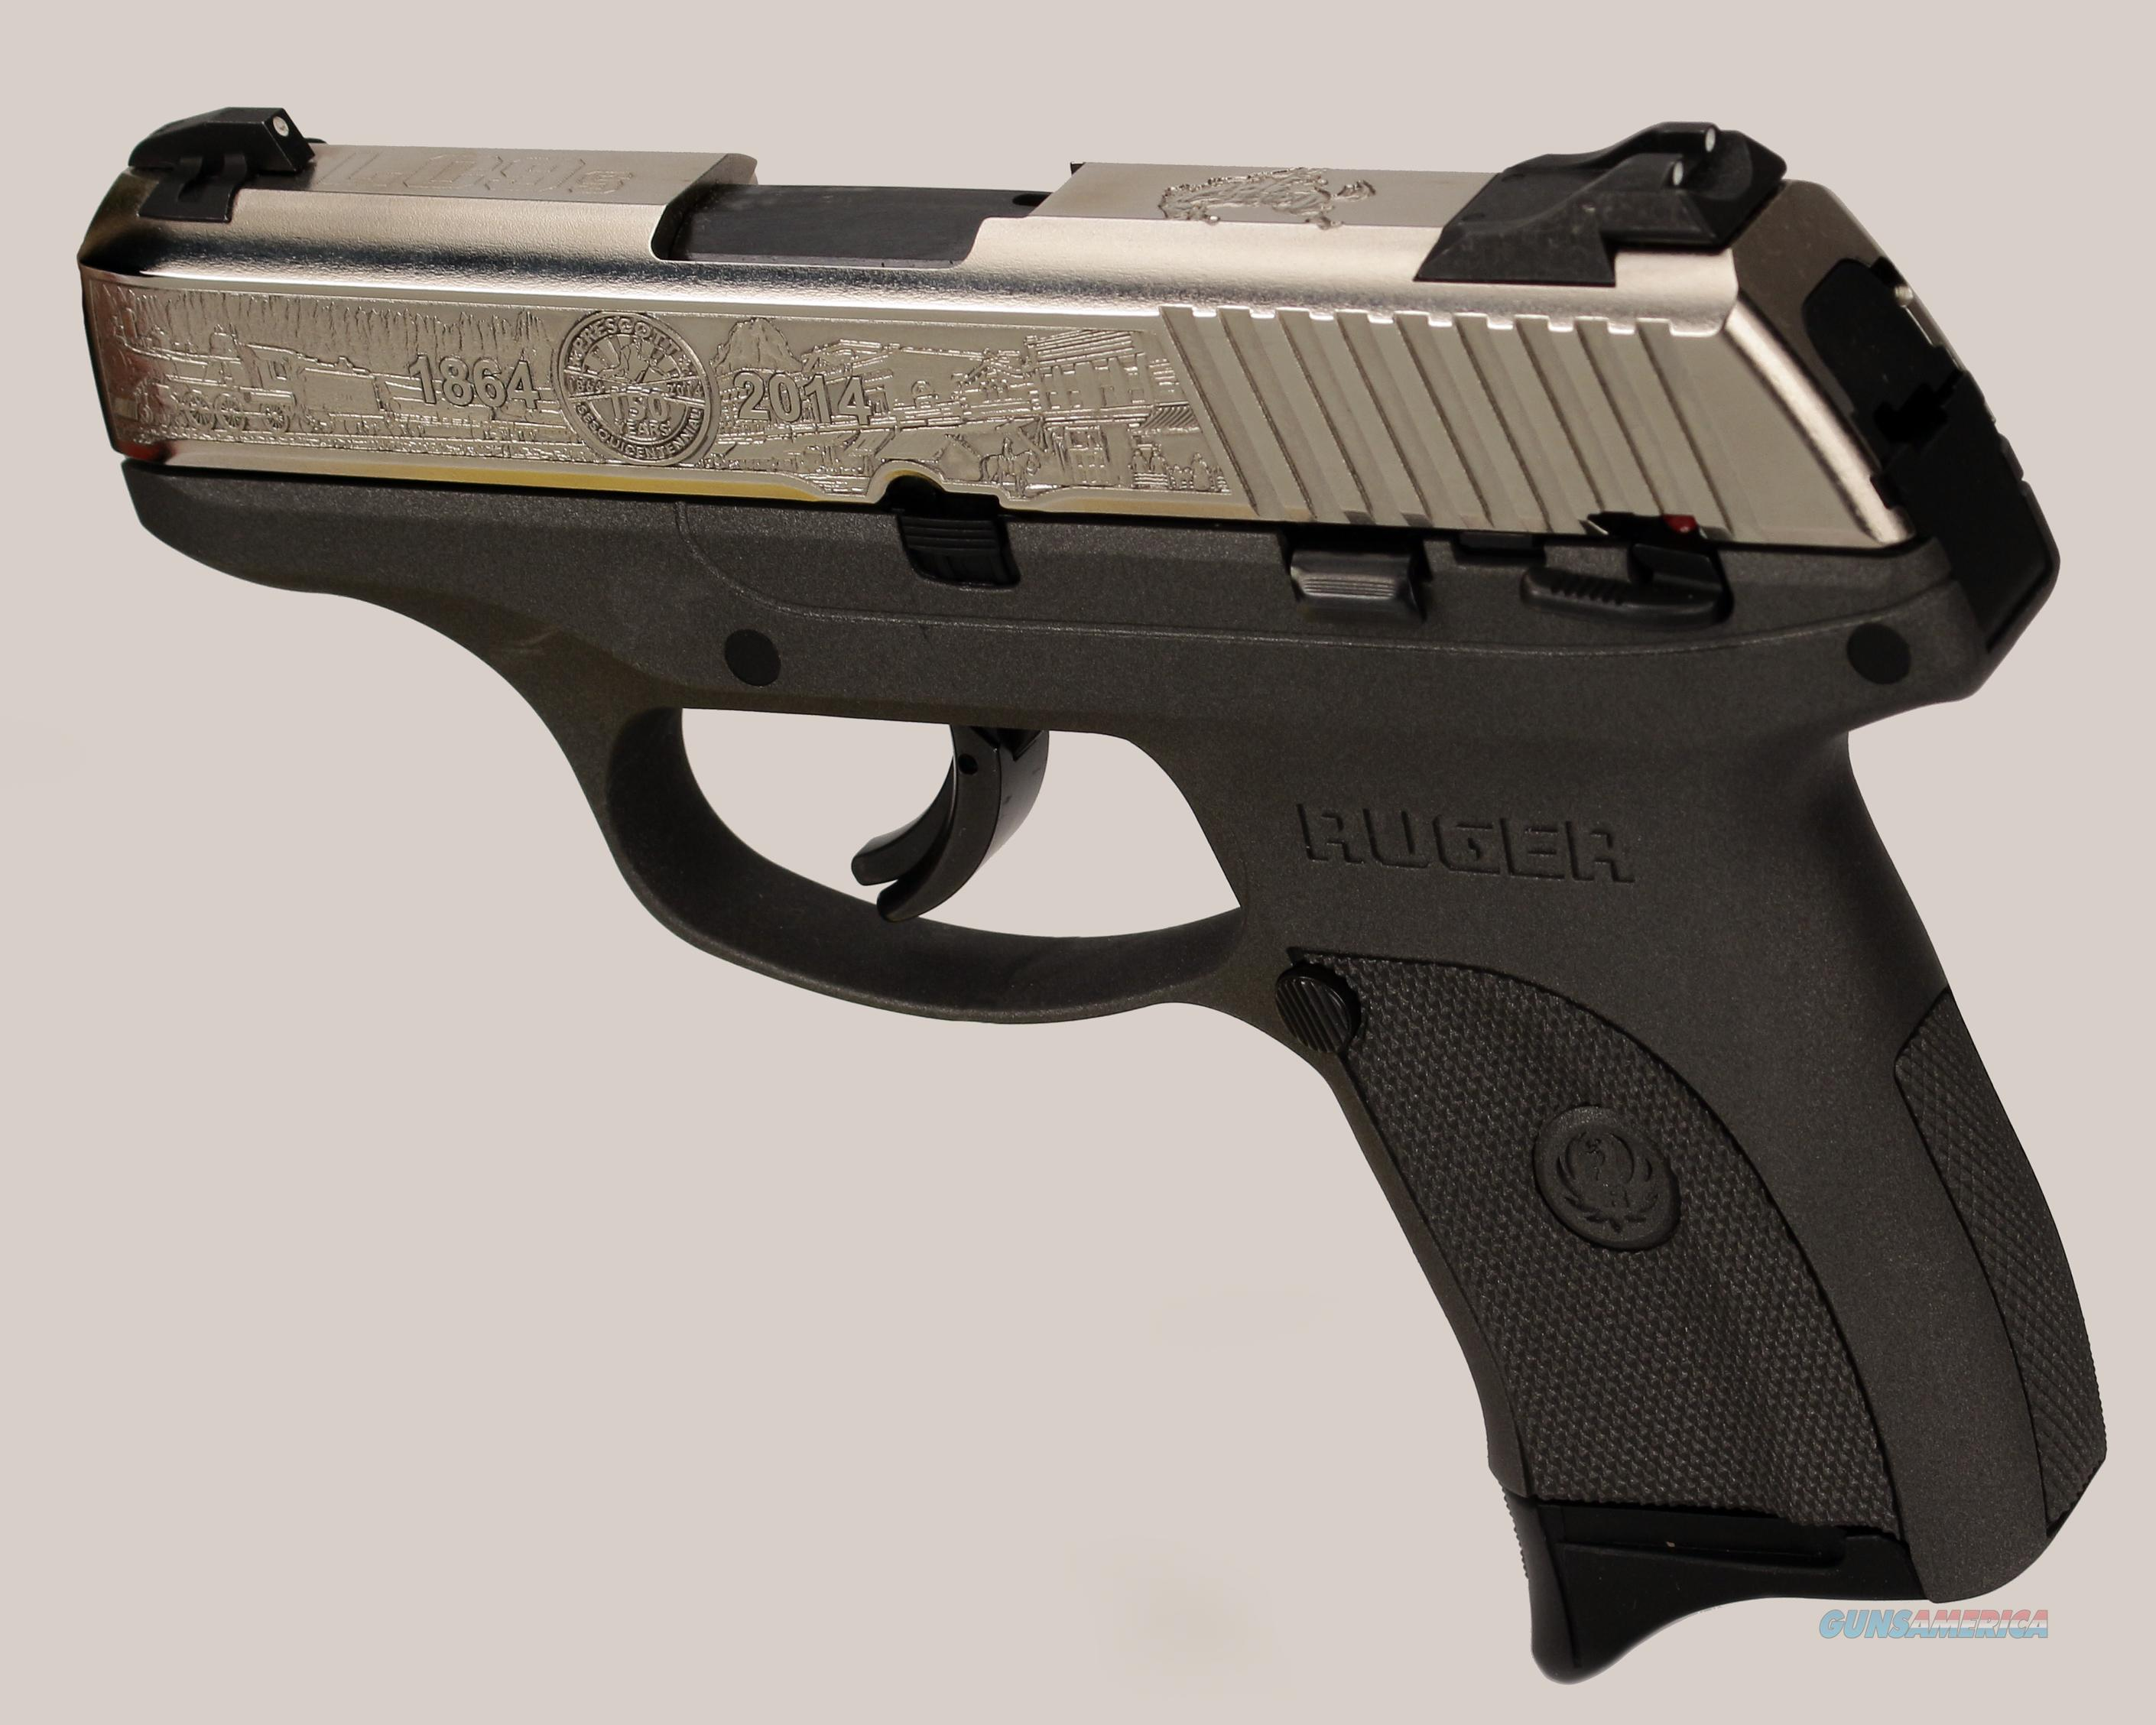 Ruger 9mm Model LC9s Pistol  Guns > Pistols > Ruger Semi-Auto Pistols > LC9